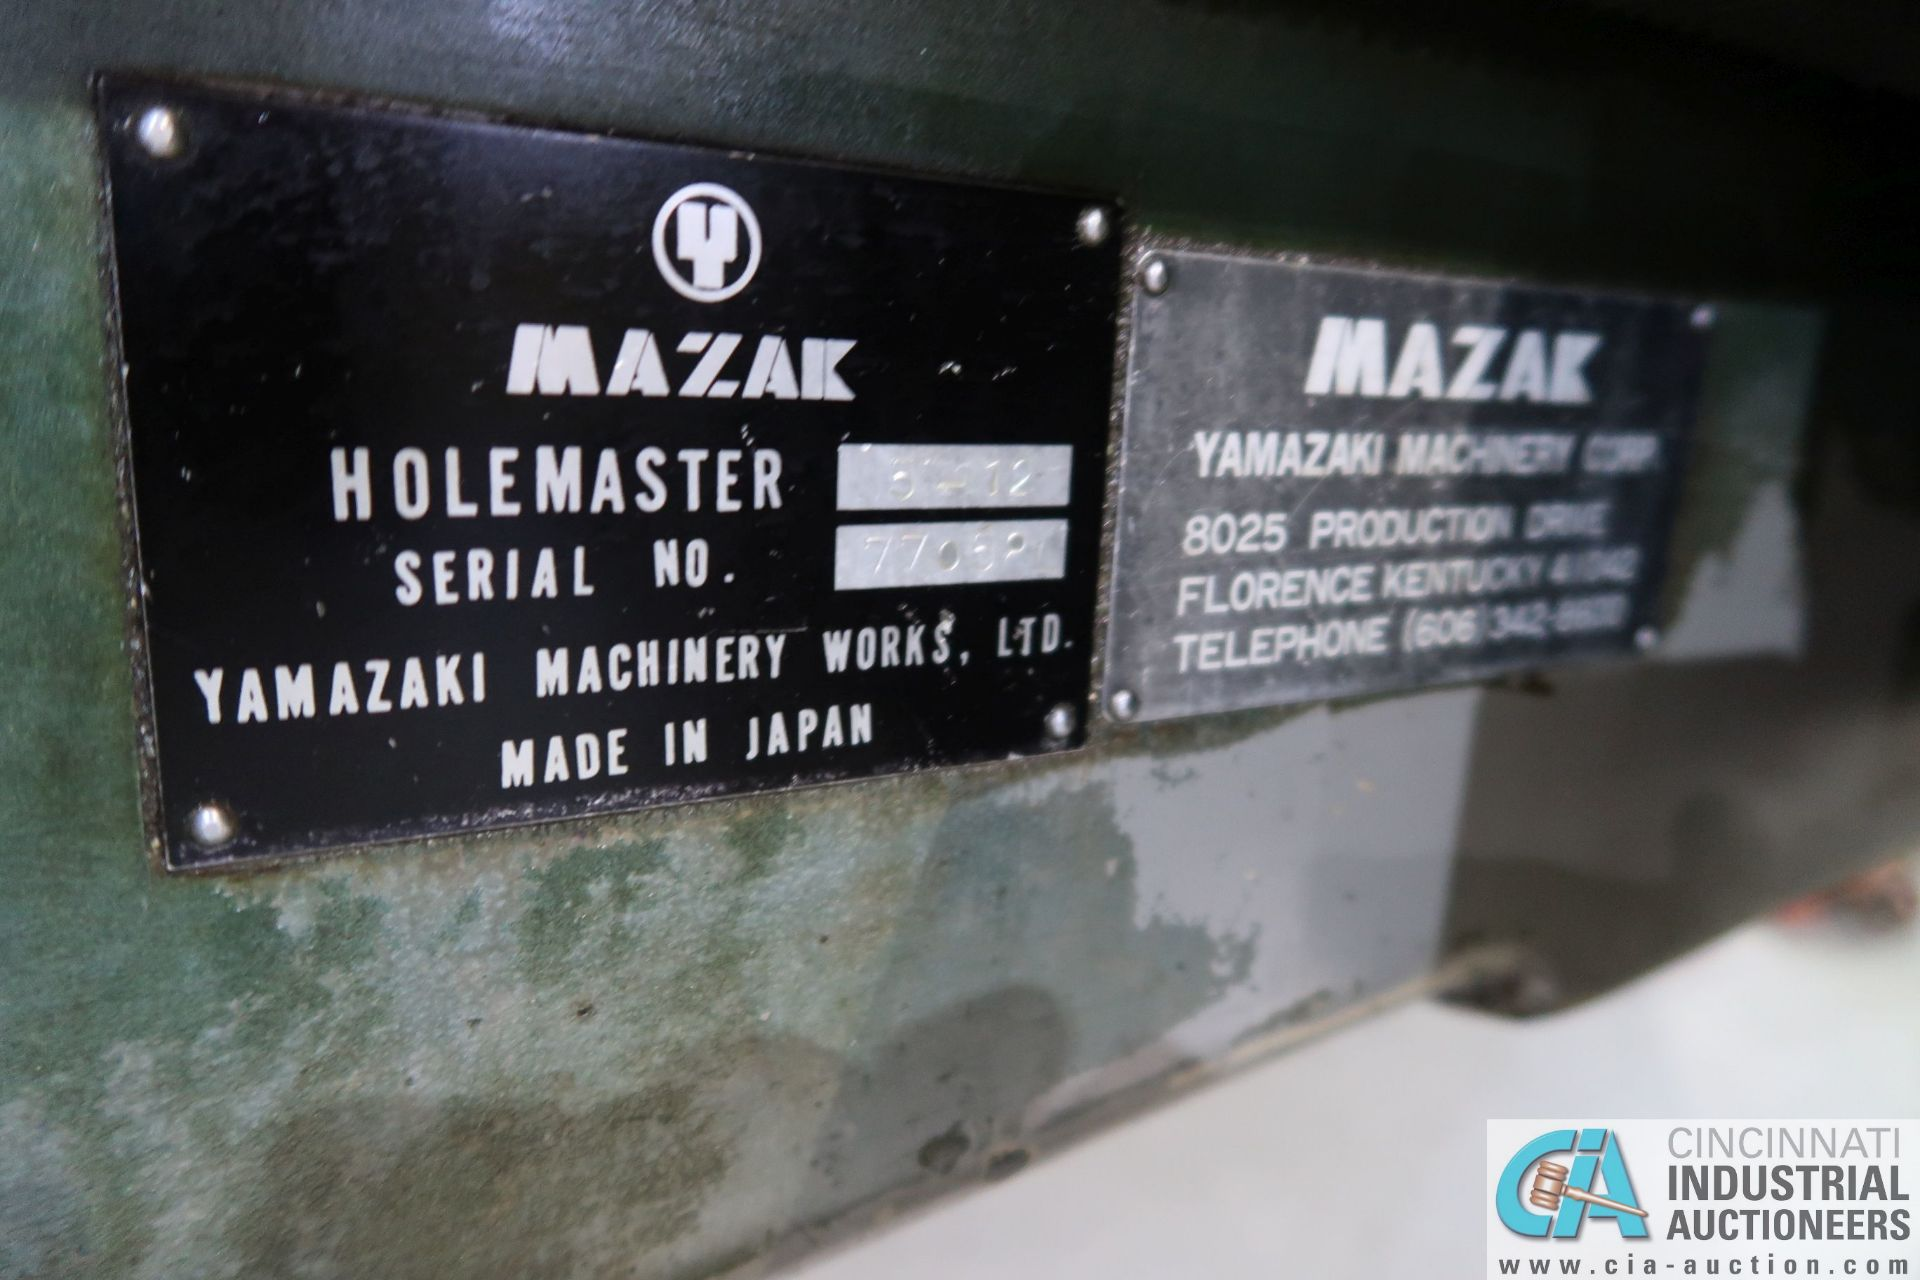 """5' ARM X 11"""" COLUMN MAZAK MODEL HOLE-MASTER 512 RADIAL ARM DRILL; S/N 77058L, WITH 20"""" X 24"""" X 16"""" - Image 5 of 12"""